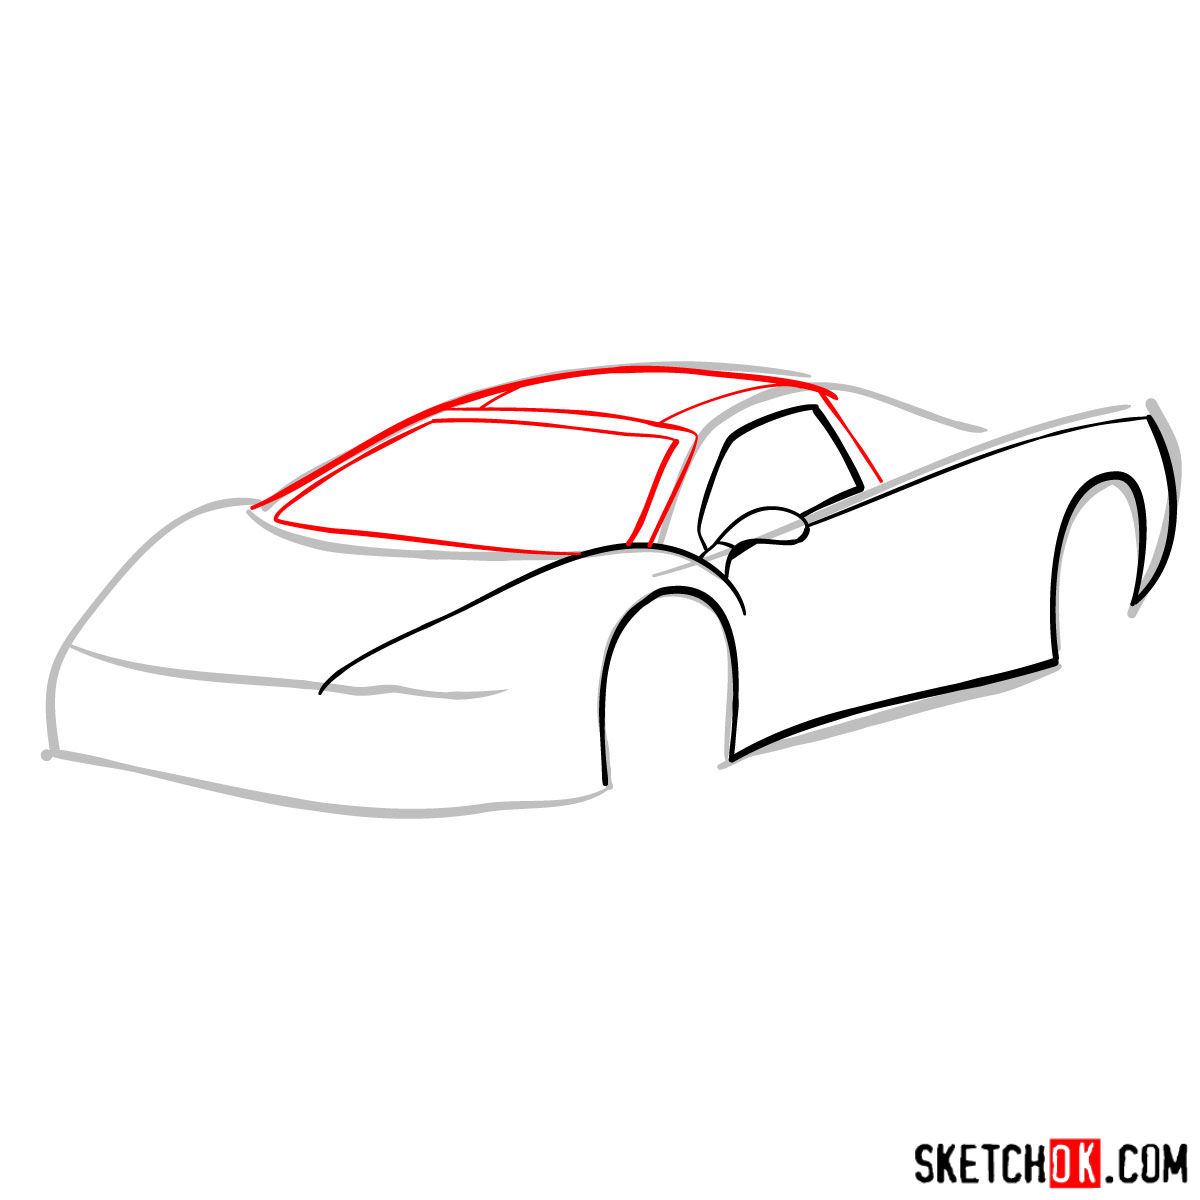 How to draw SSC Ultimate Aero TT 2006 - step 04